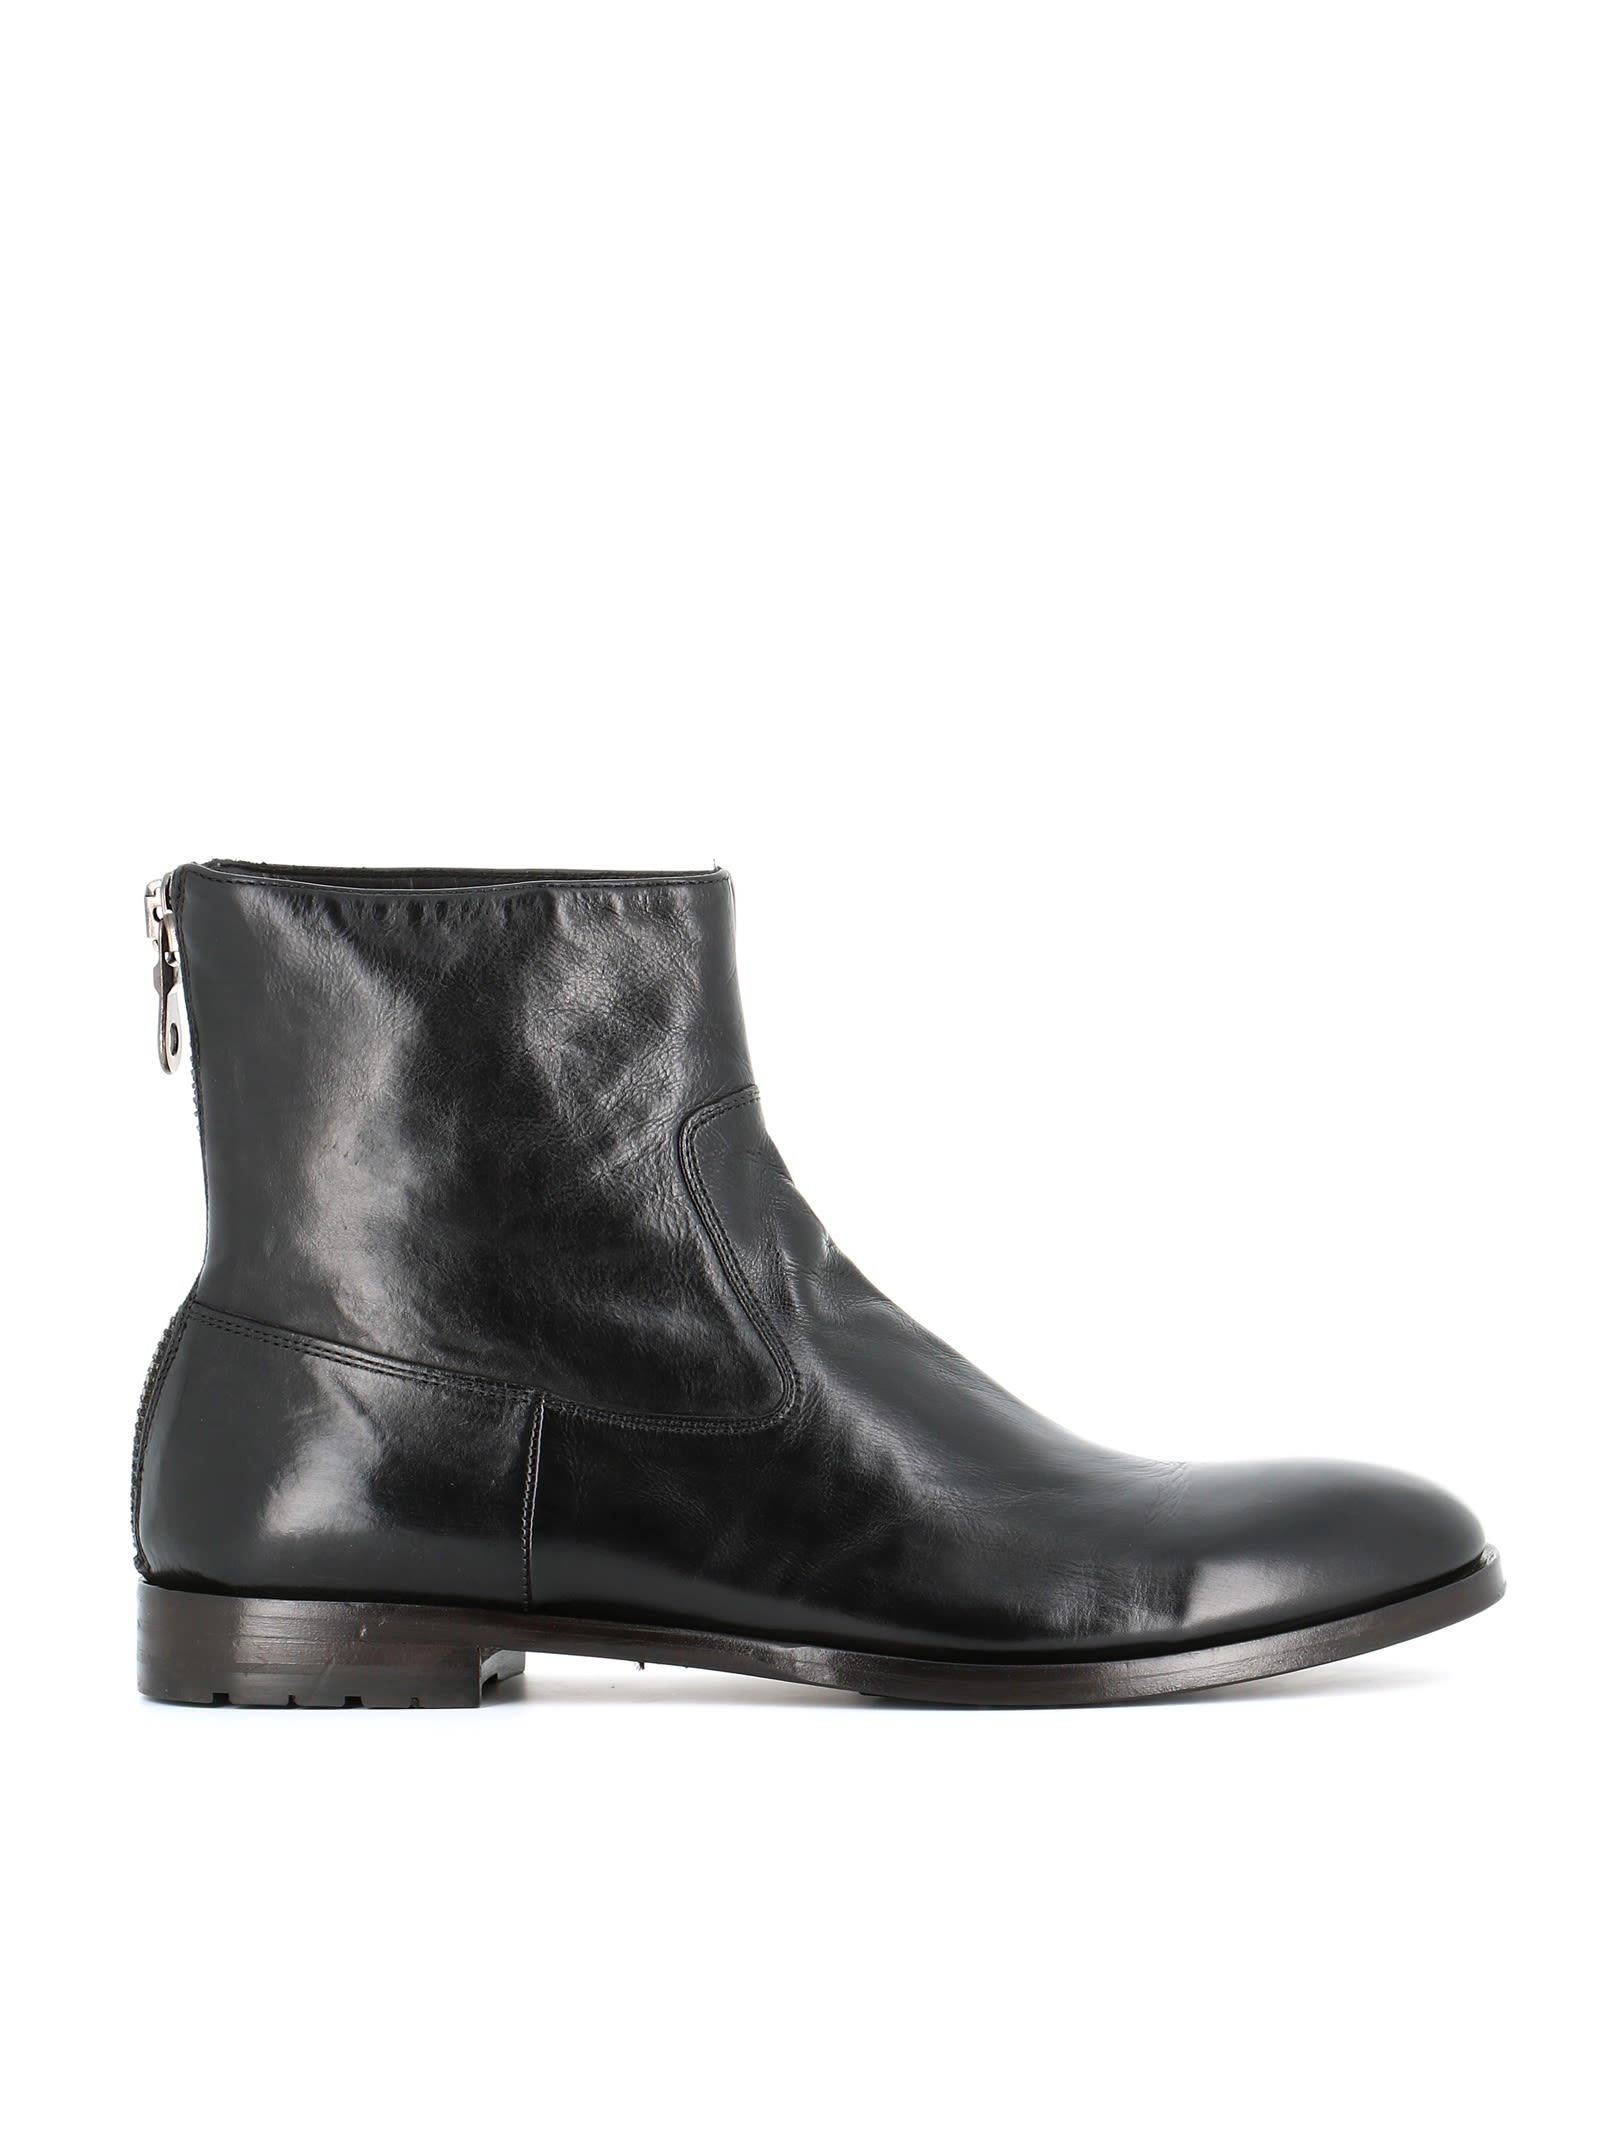 "STURLINI Ankle Boot ""Ar-6607"" in Black"